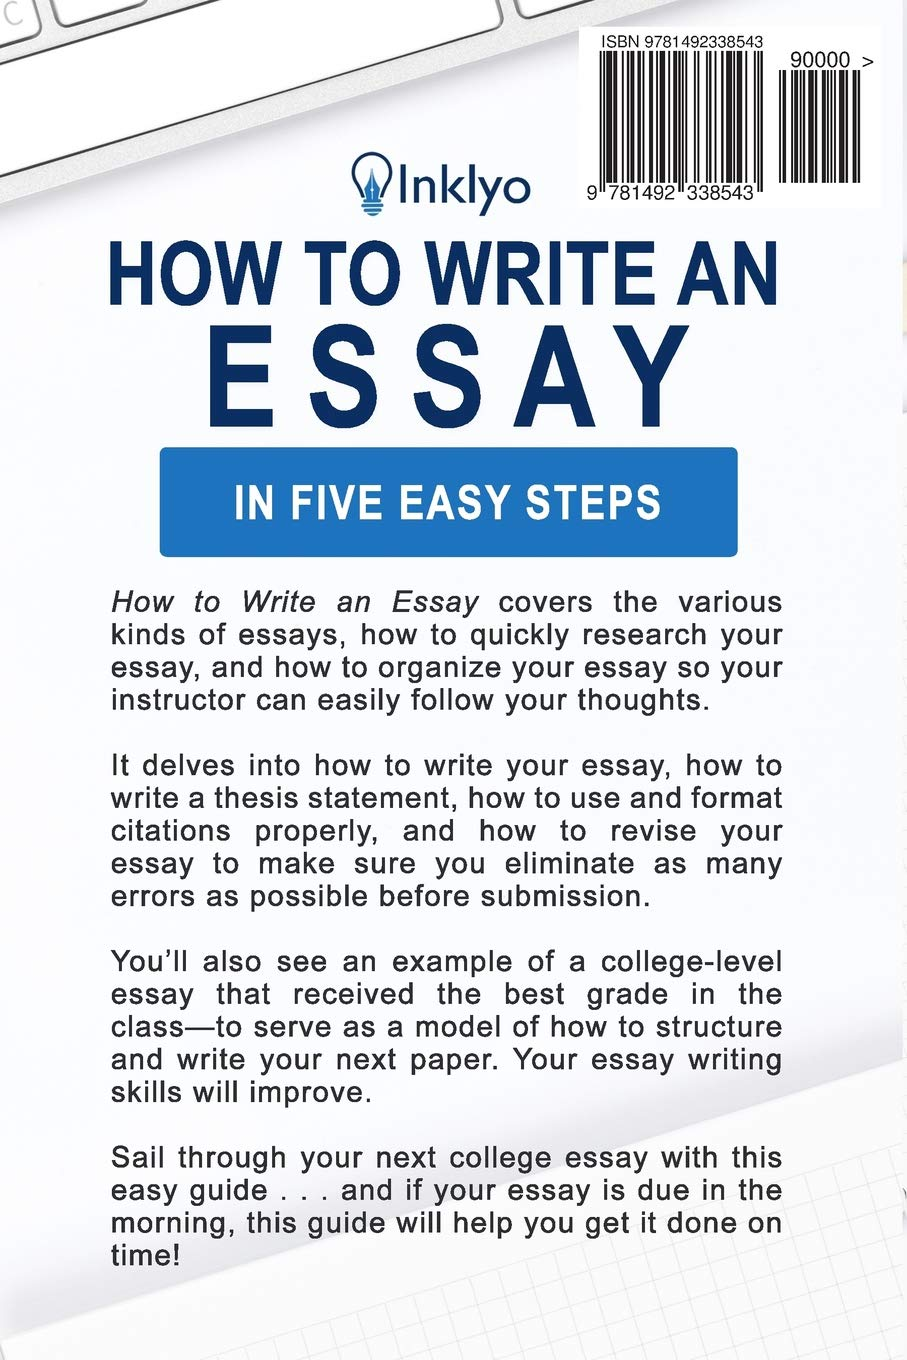 002 How To Write An Essay Example Shocking About Myself For A Scholarship Excellent Conclusion Pdf Full